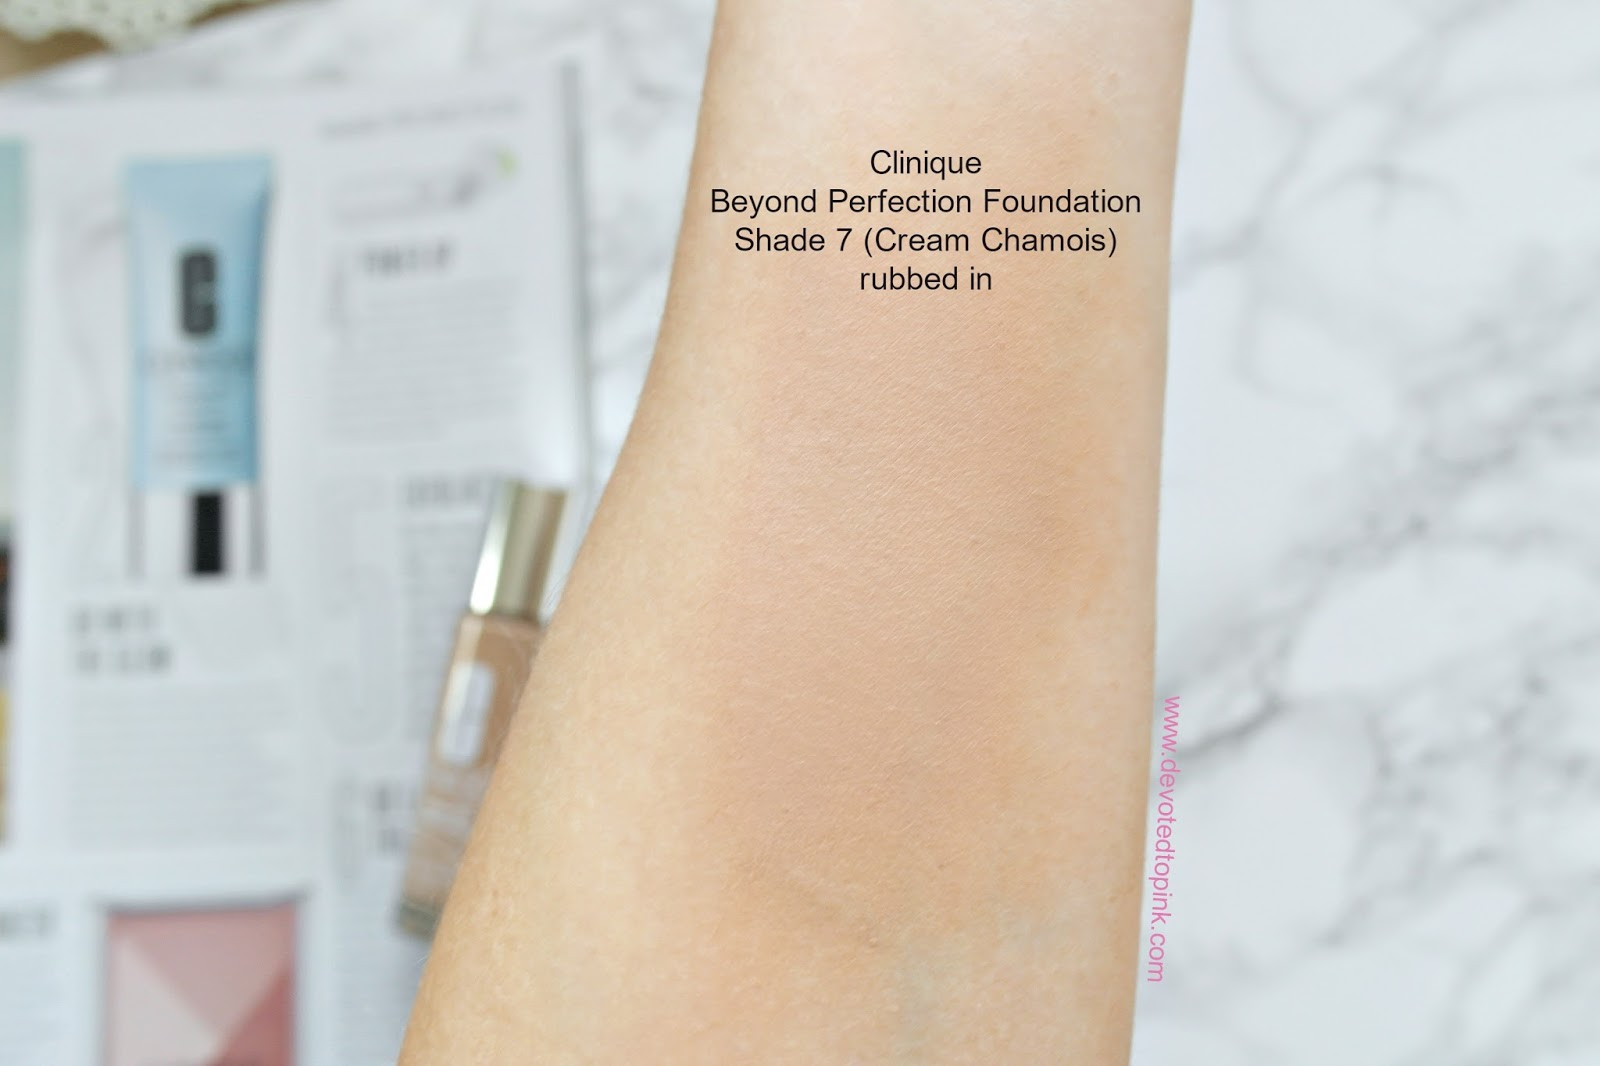 Clinique beyond perfection foundation and concealer, review, shade 7, cream chamois